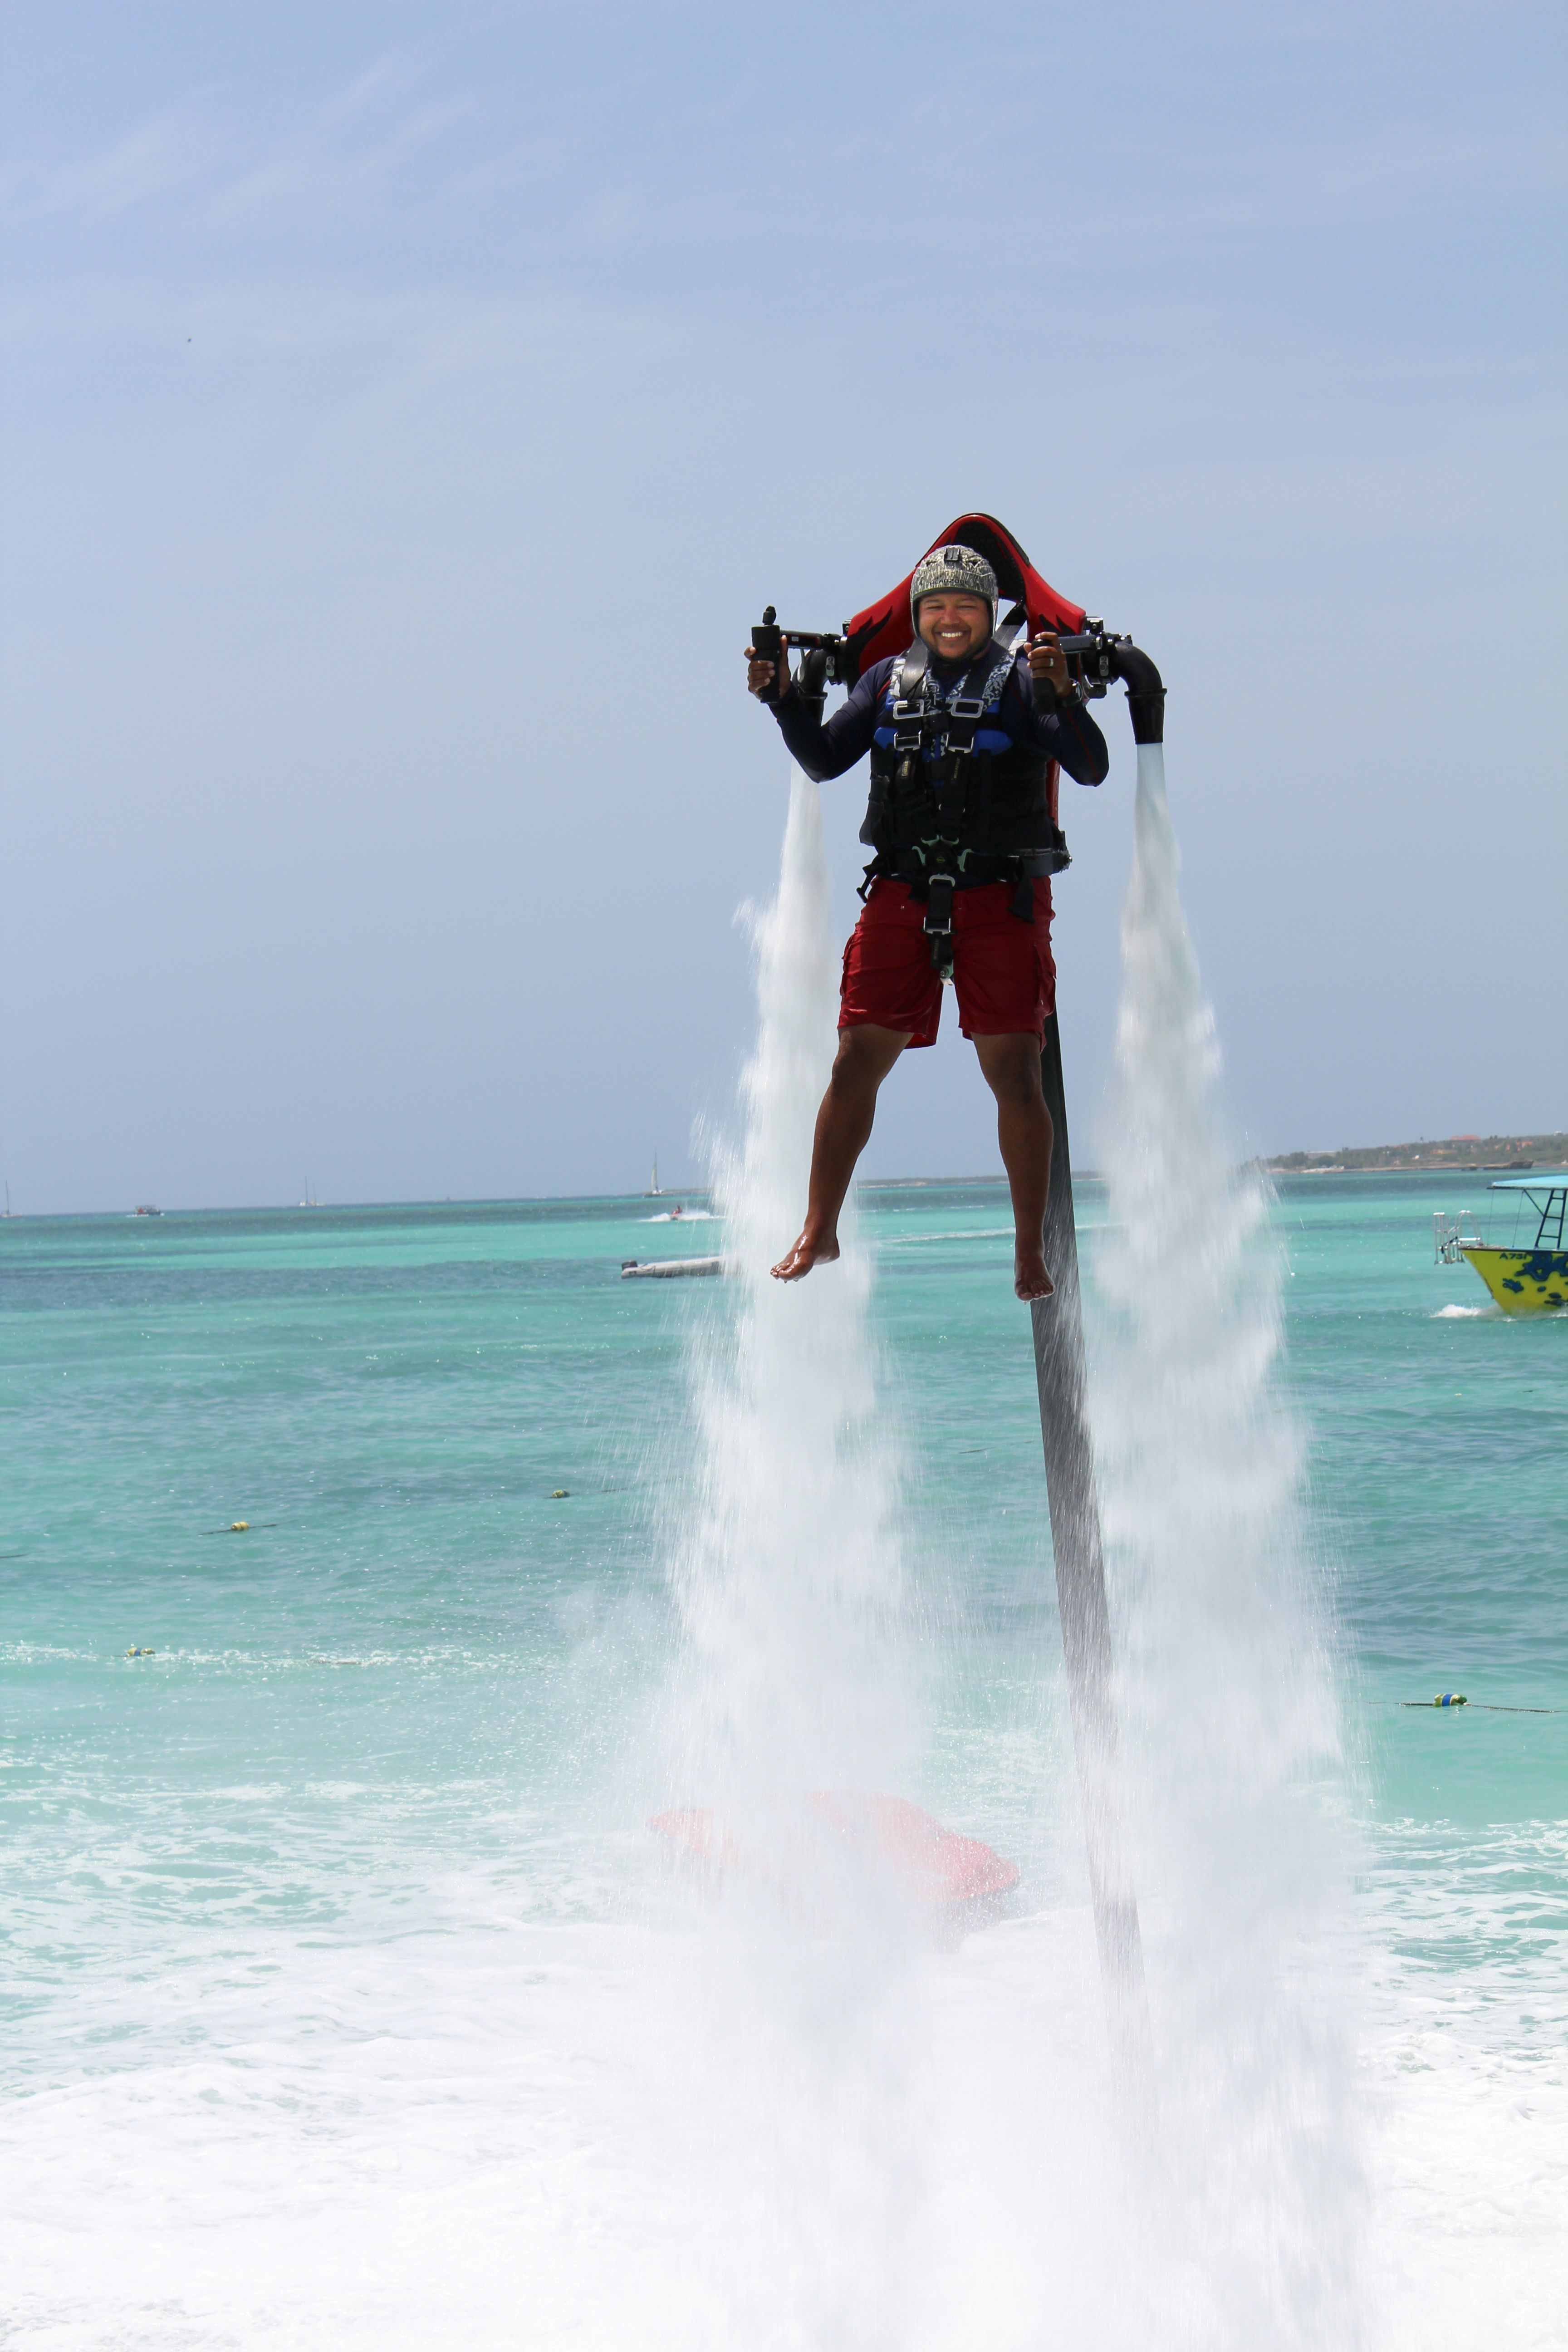 Jetlev Incredible Flying Experience